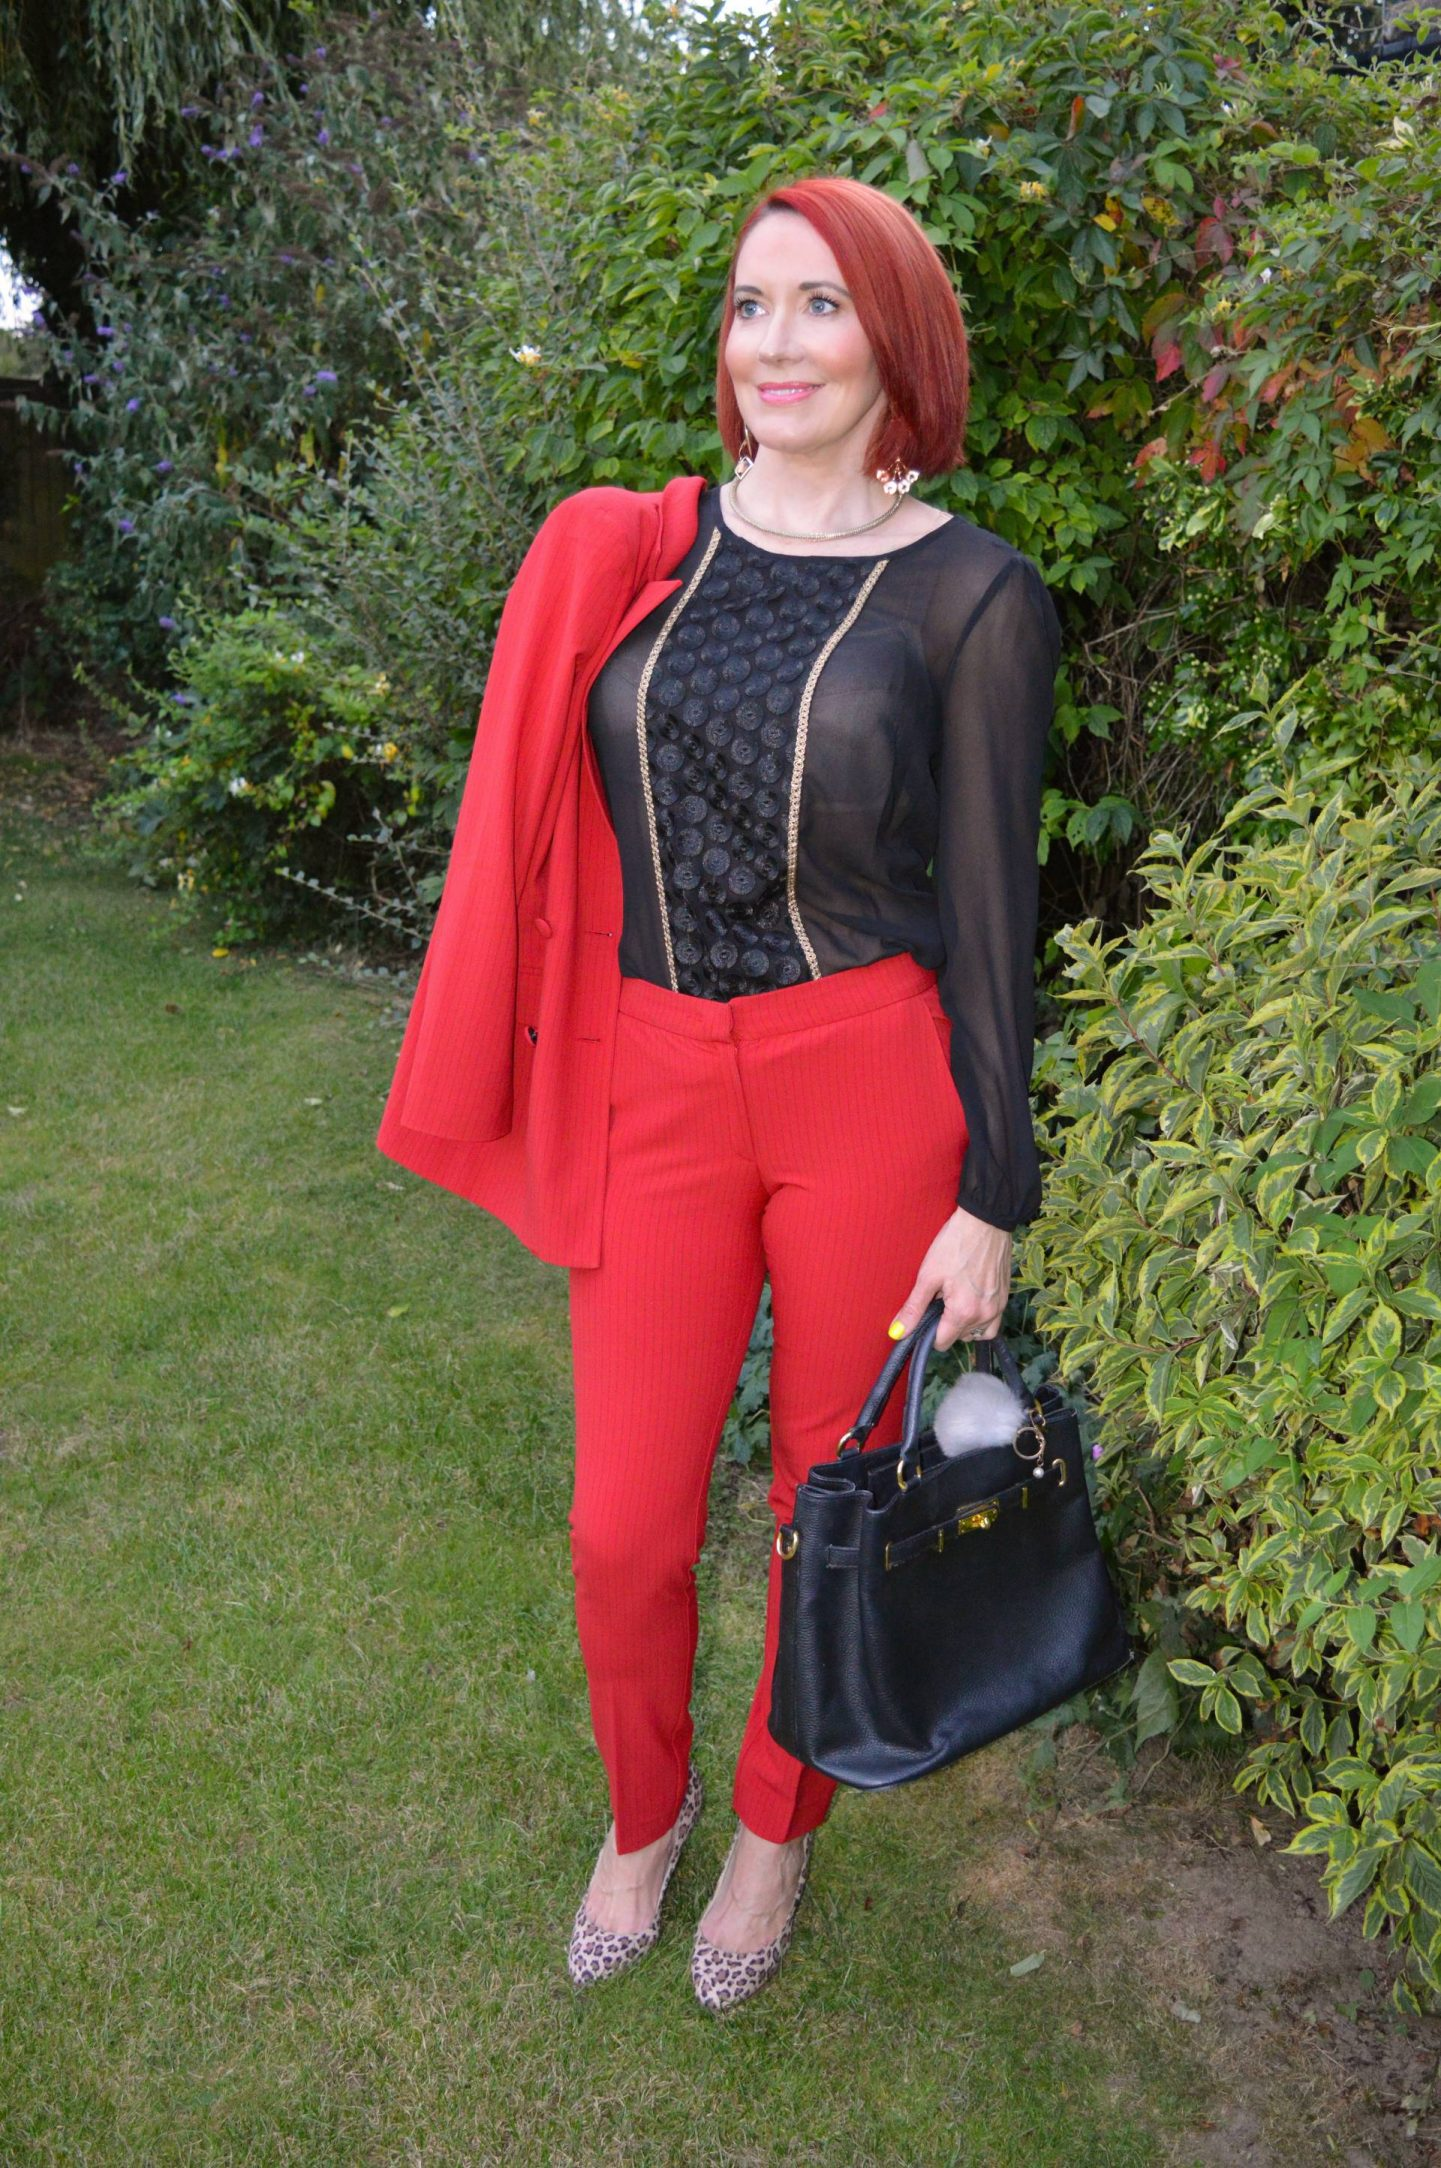 Red Alert Trouser Suit, Style & Suit Red Alert blazer and trousers, Marks & Spencer black sheer blouse, New Look leopard print shoes